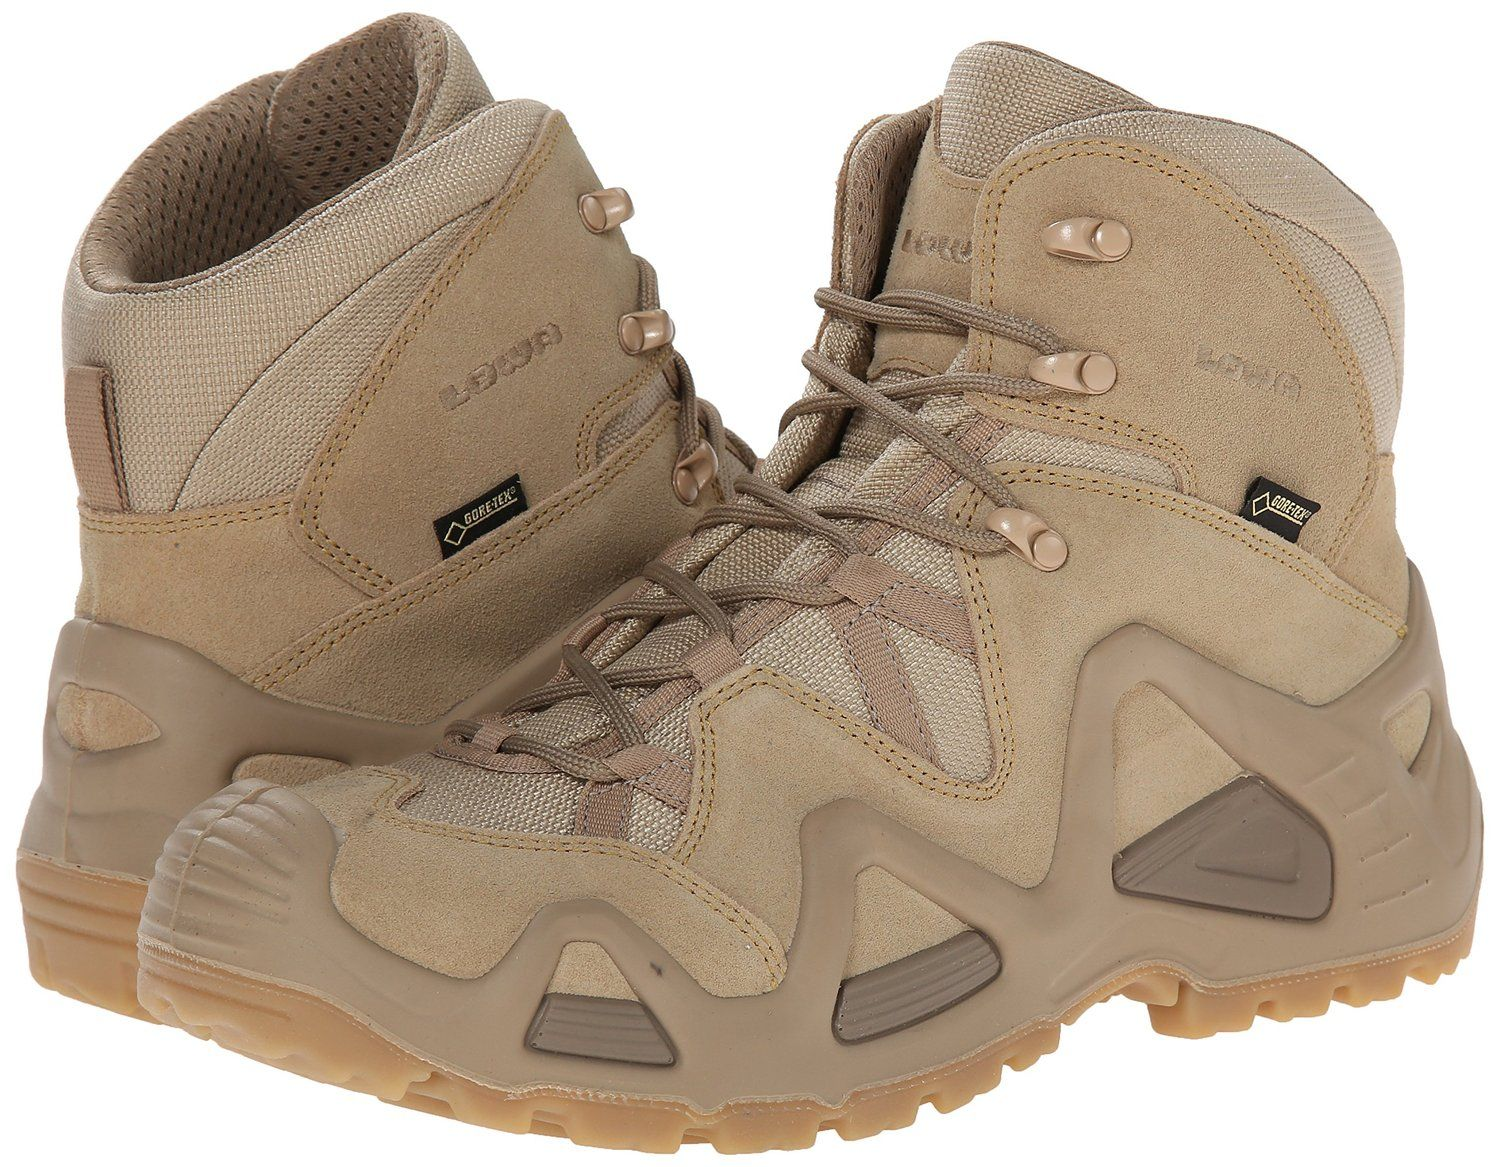 Lowa Mens Zephyr Gore-Tex Mid Task Force Military Hiking Leather Boots